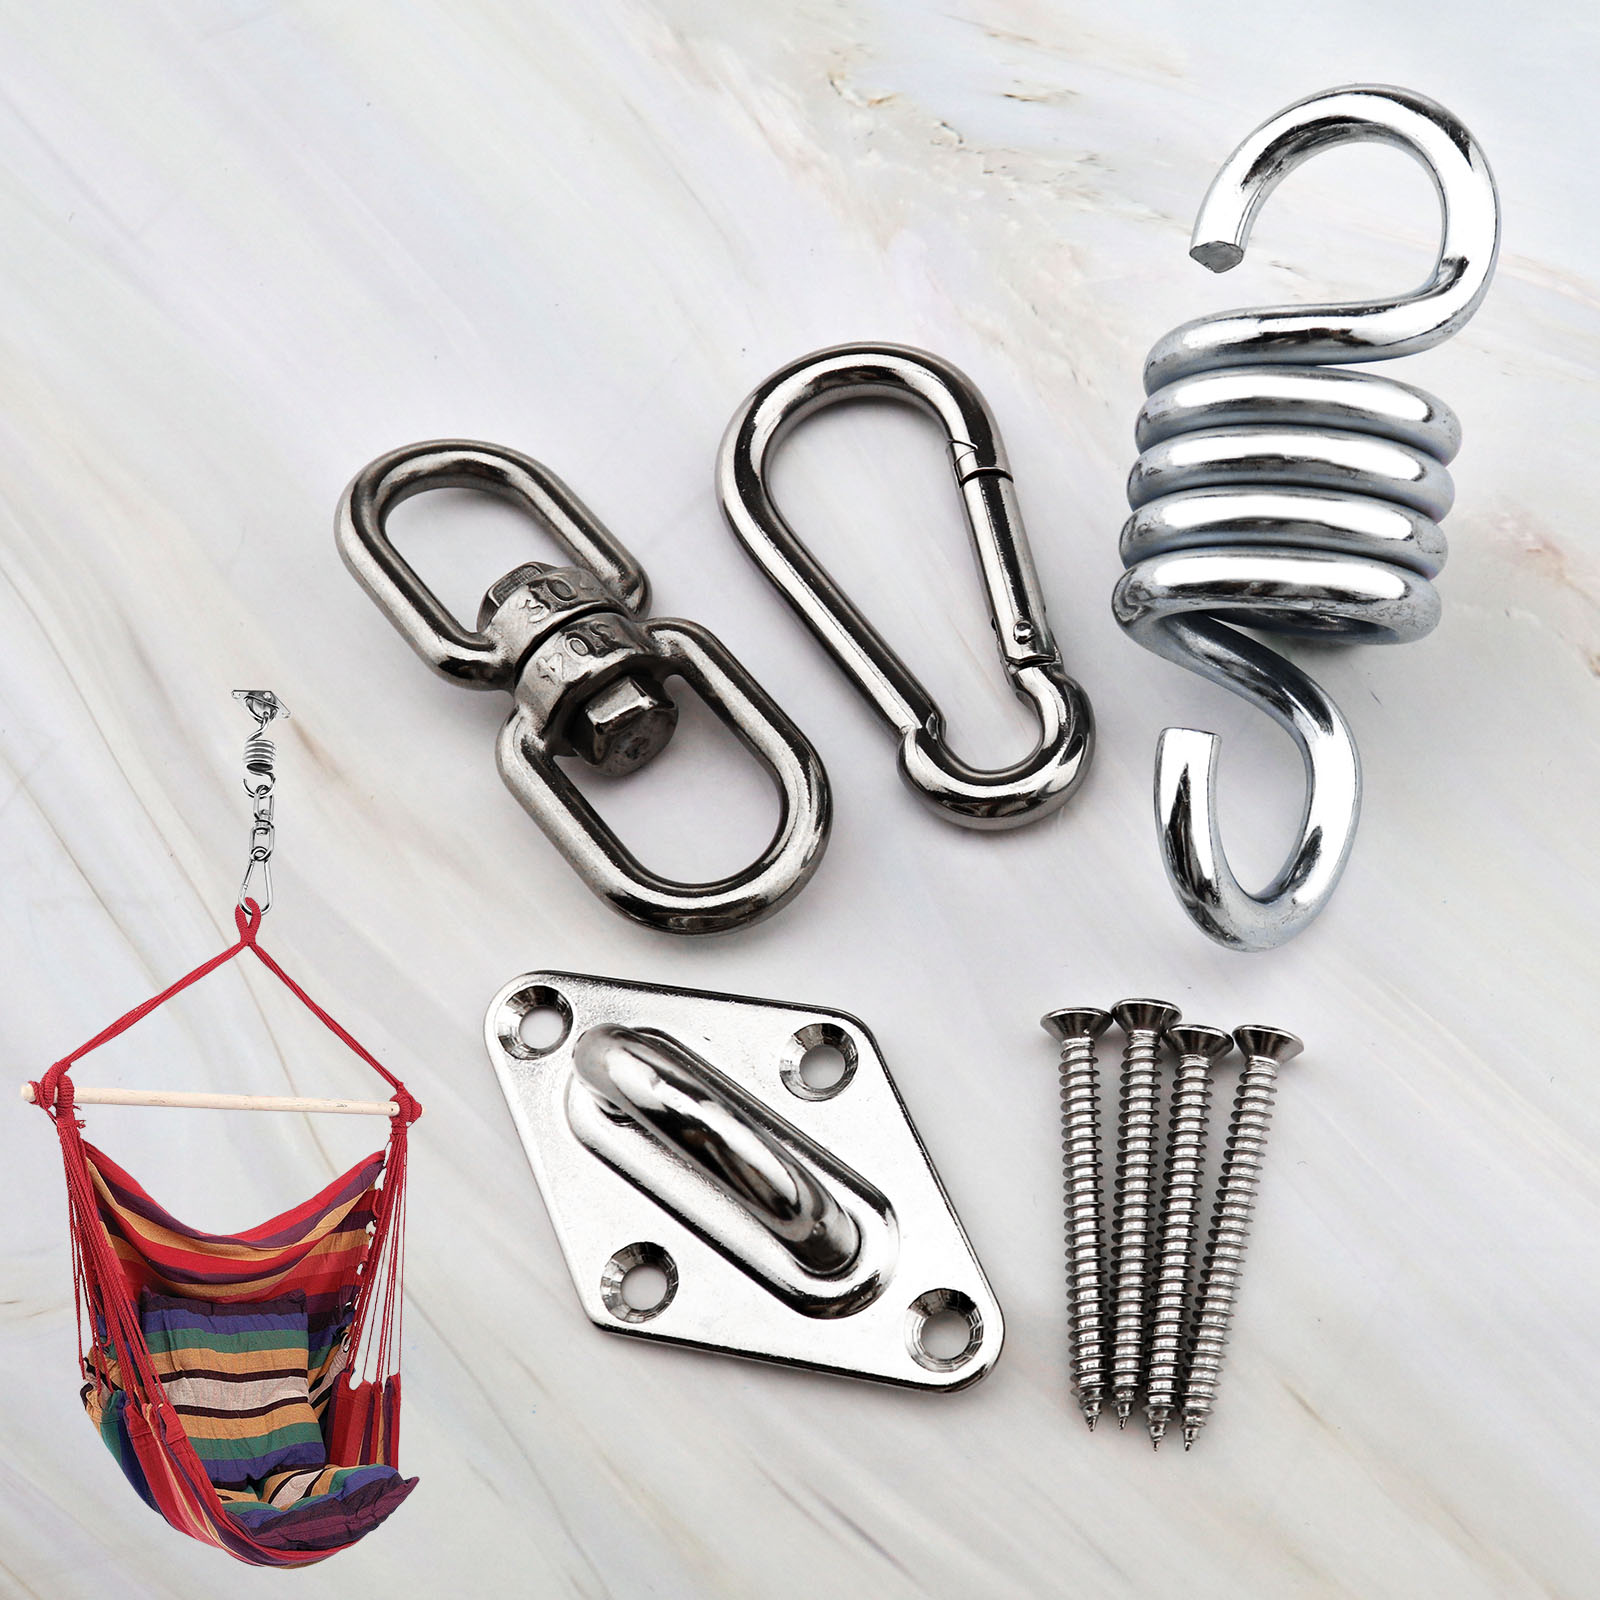 Fixing Accessories For Hammock Chairs Porch Swing Swinging Chair